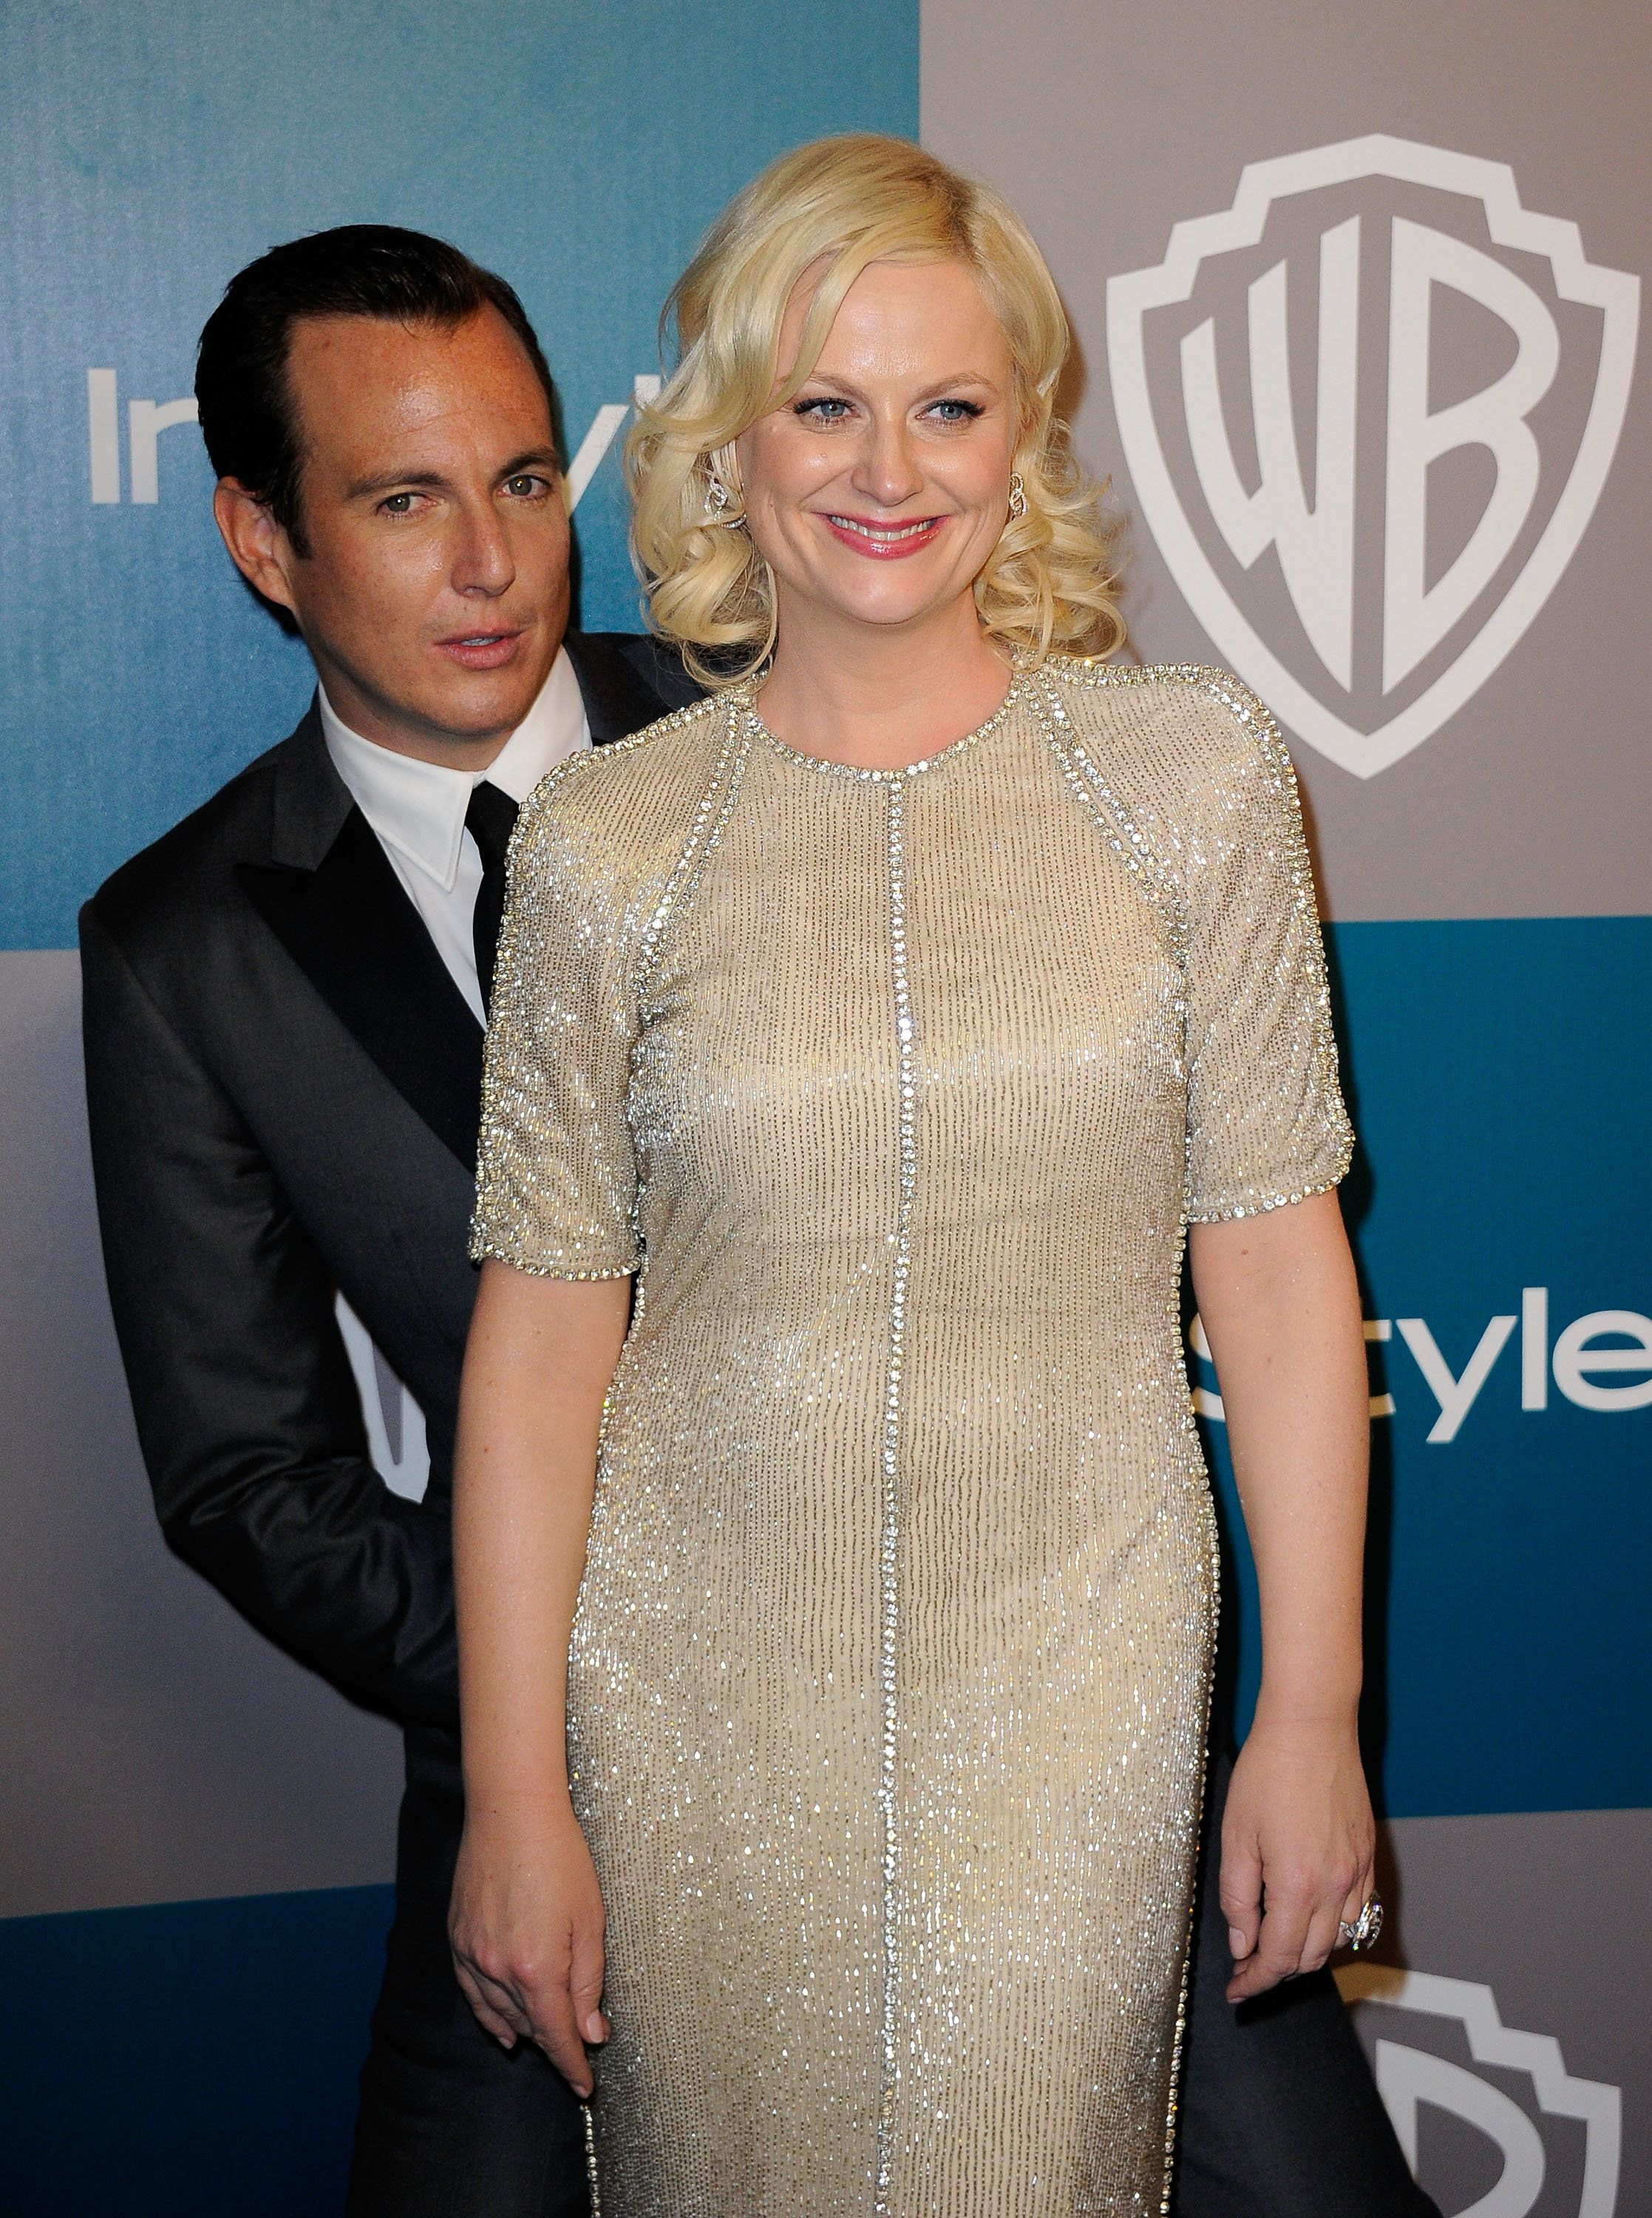 BEVERLY HILLS, CA - JANUARY 15:  Actors Amy Poehler and Will Arnett arrive at 13th Annual Warner Bros. And InStyle Golden Globe Awards After Party at The Beverly Hilton hotel on January 15, 2012 in Beverly Hills, California.  (Photo by Kevork Djansezian/Getty Images)